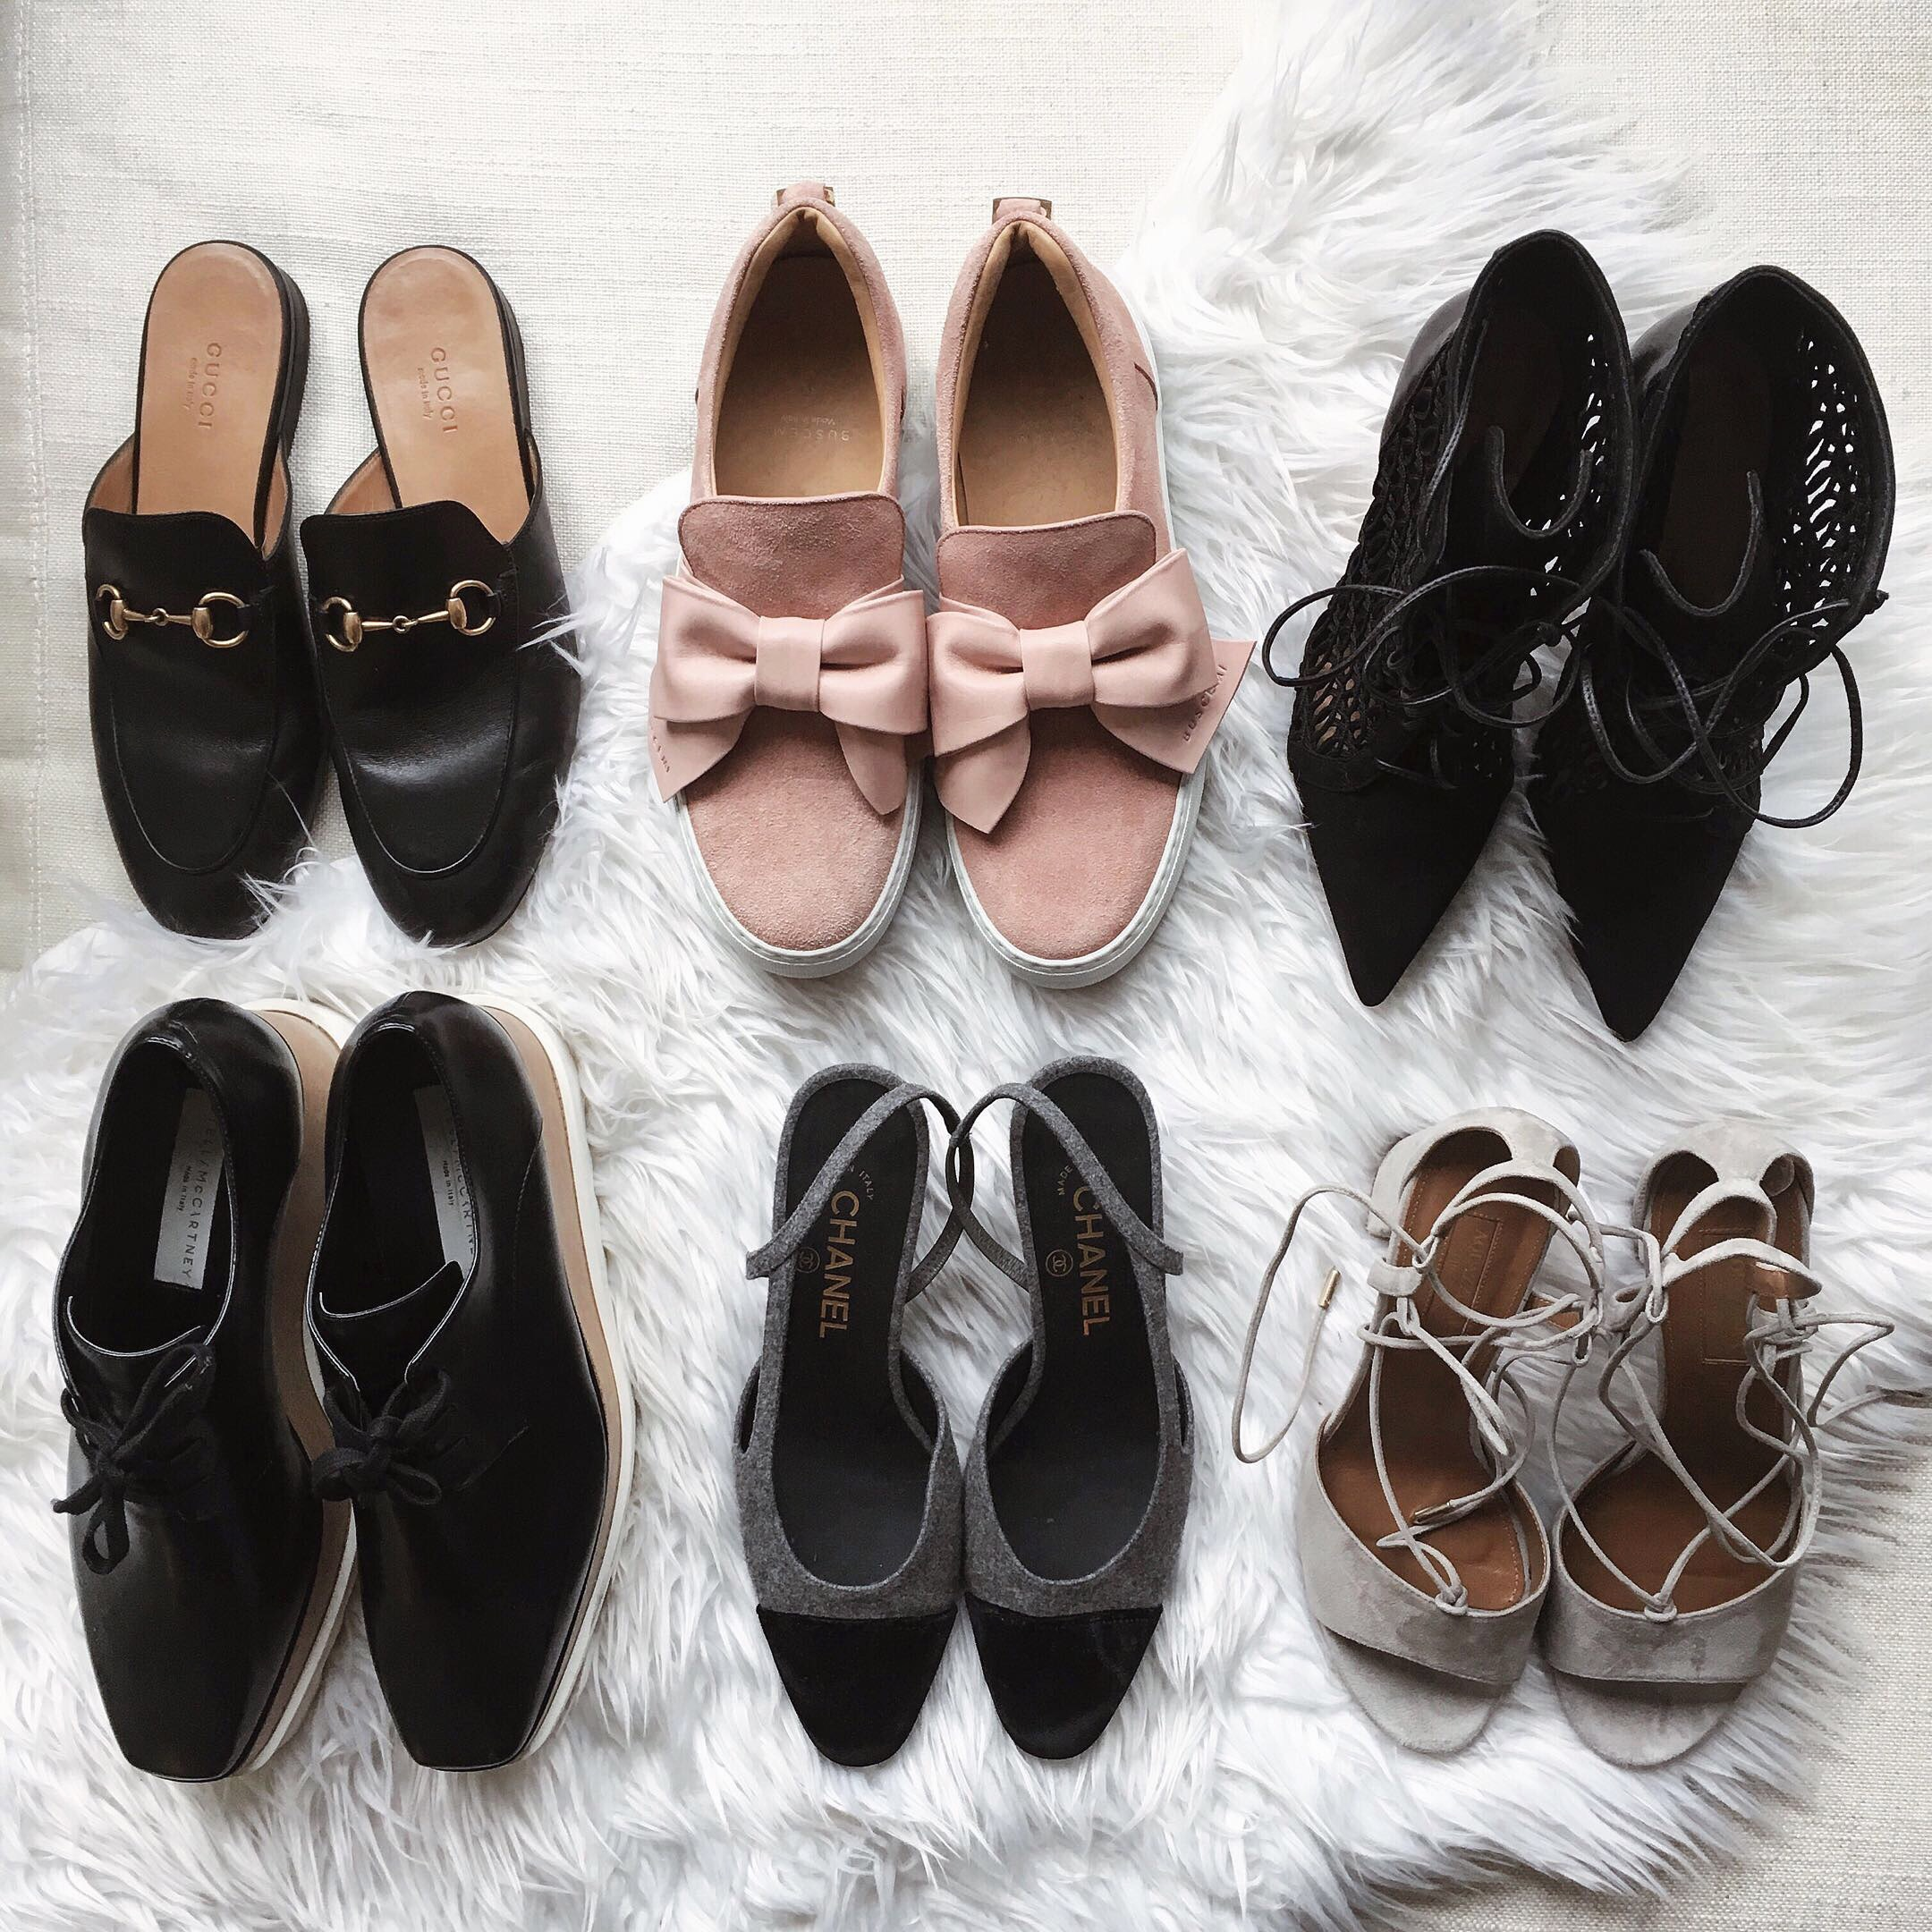 Style MBA shoes